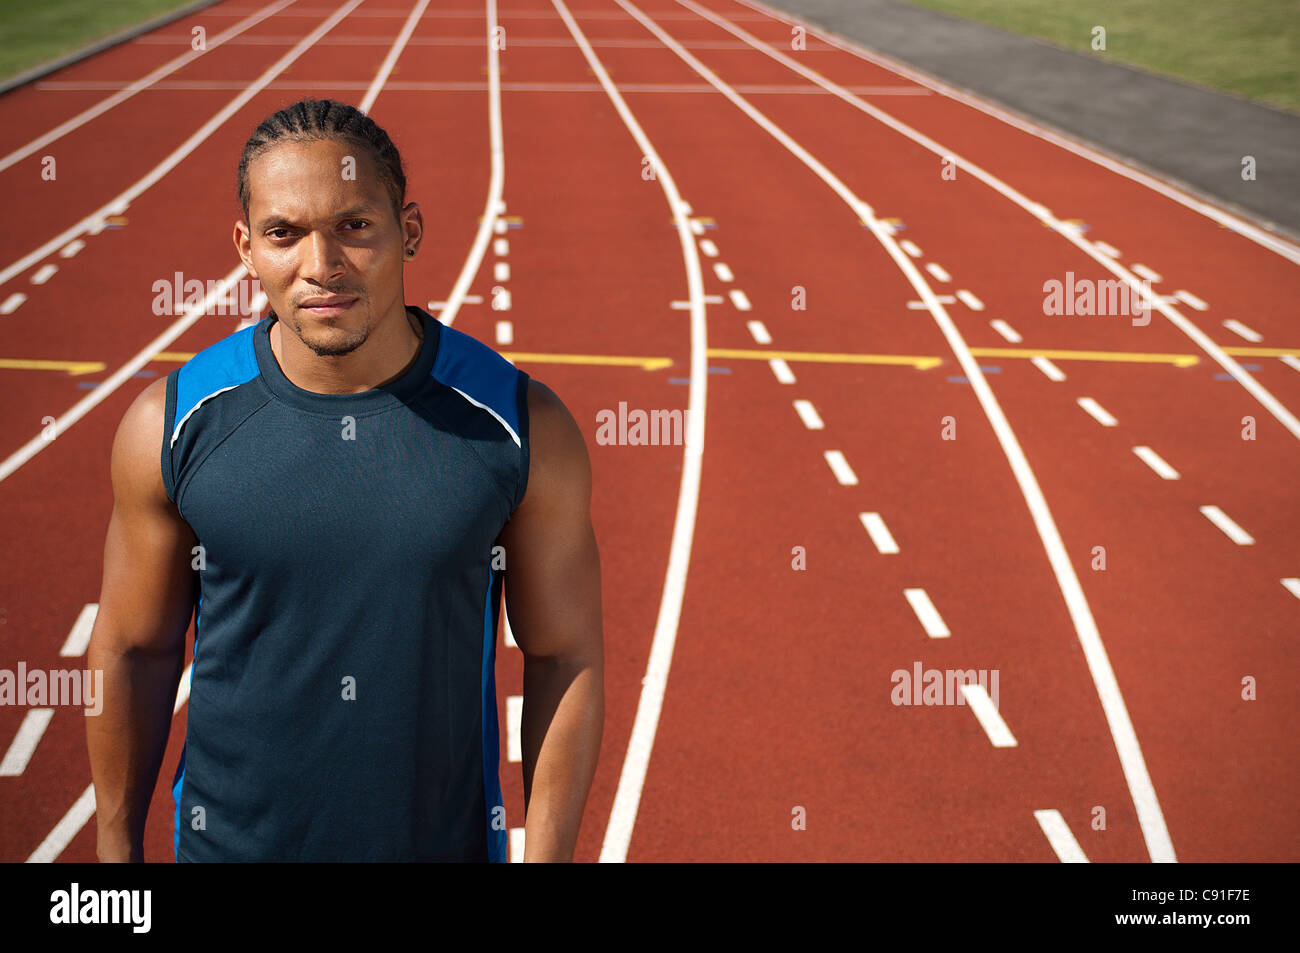 Athlete standing on track Stock Photo